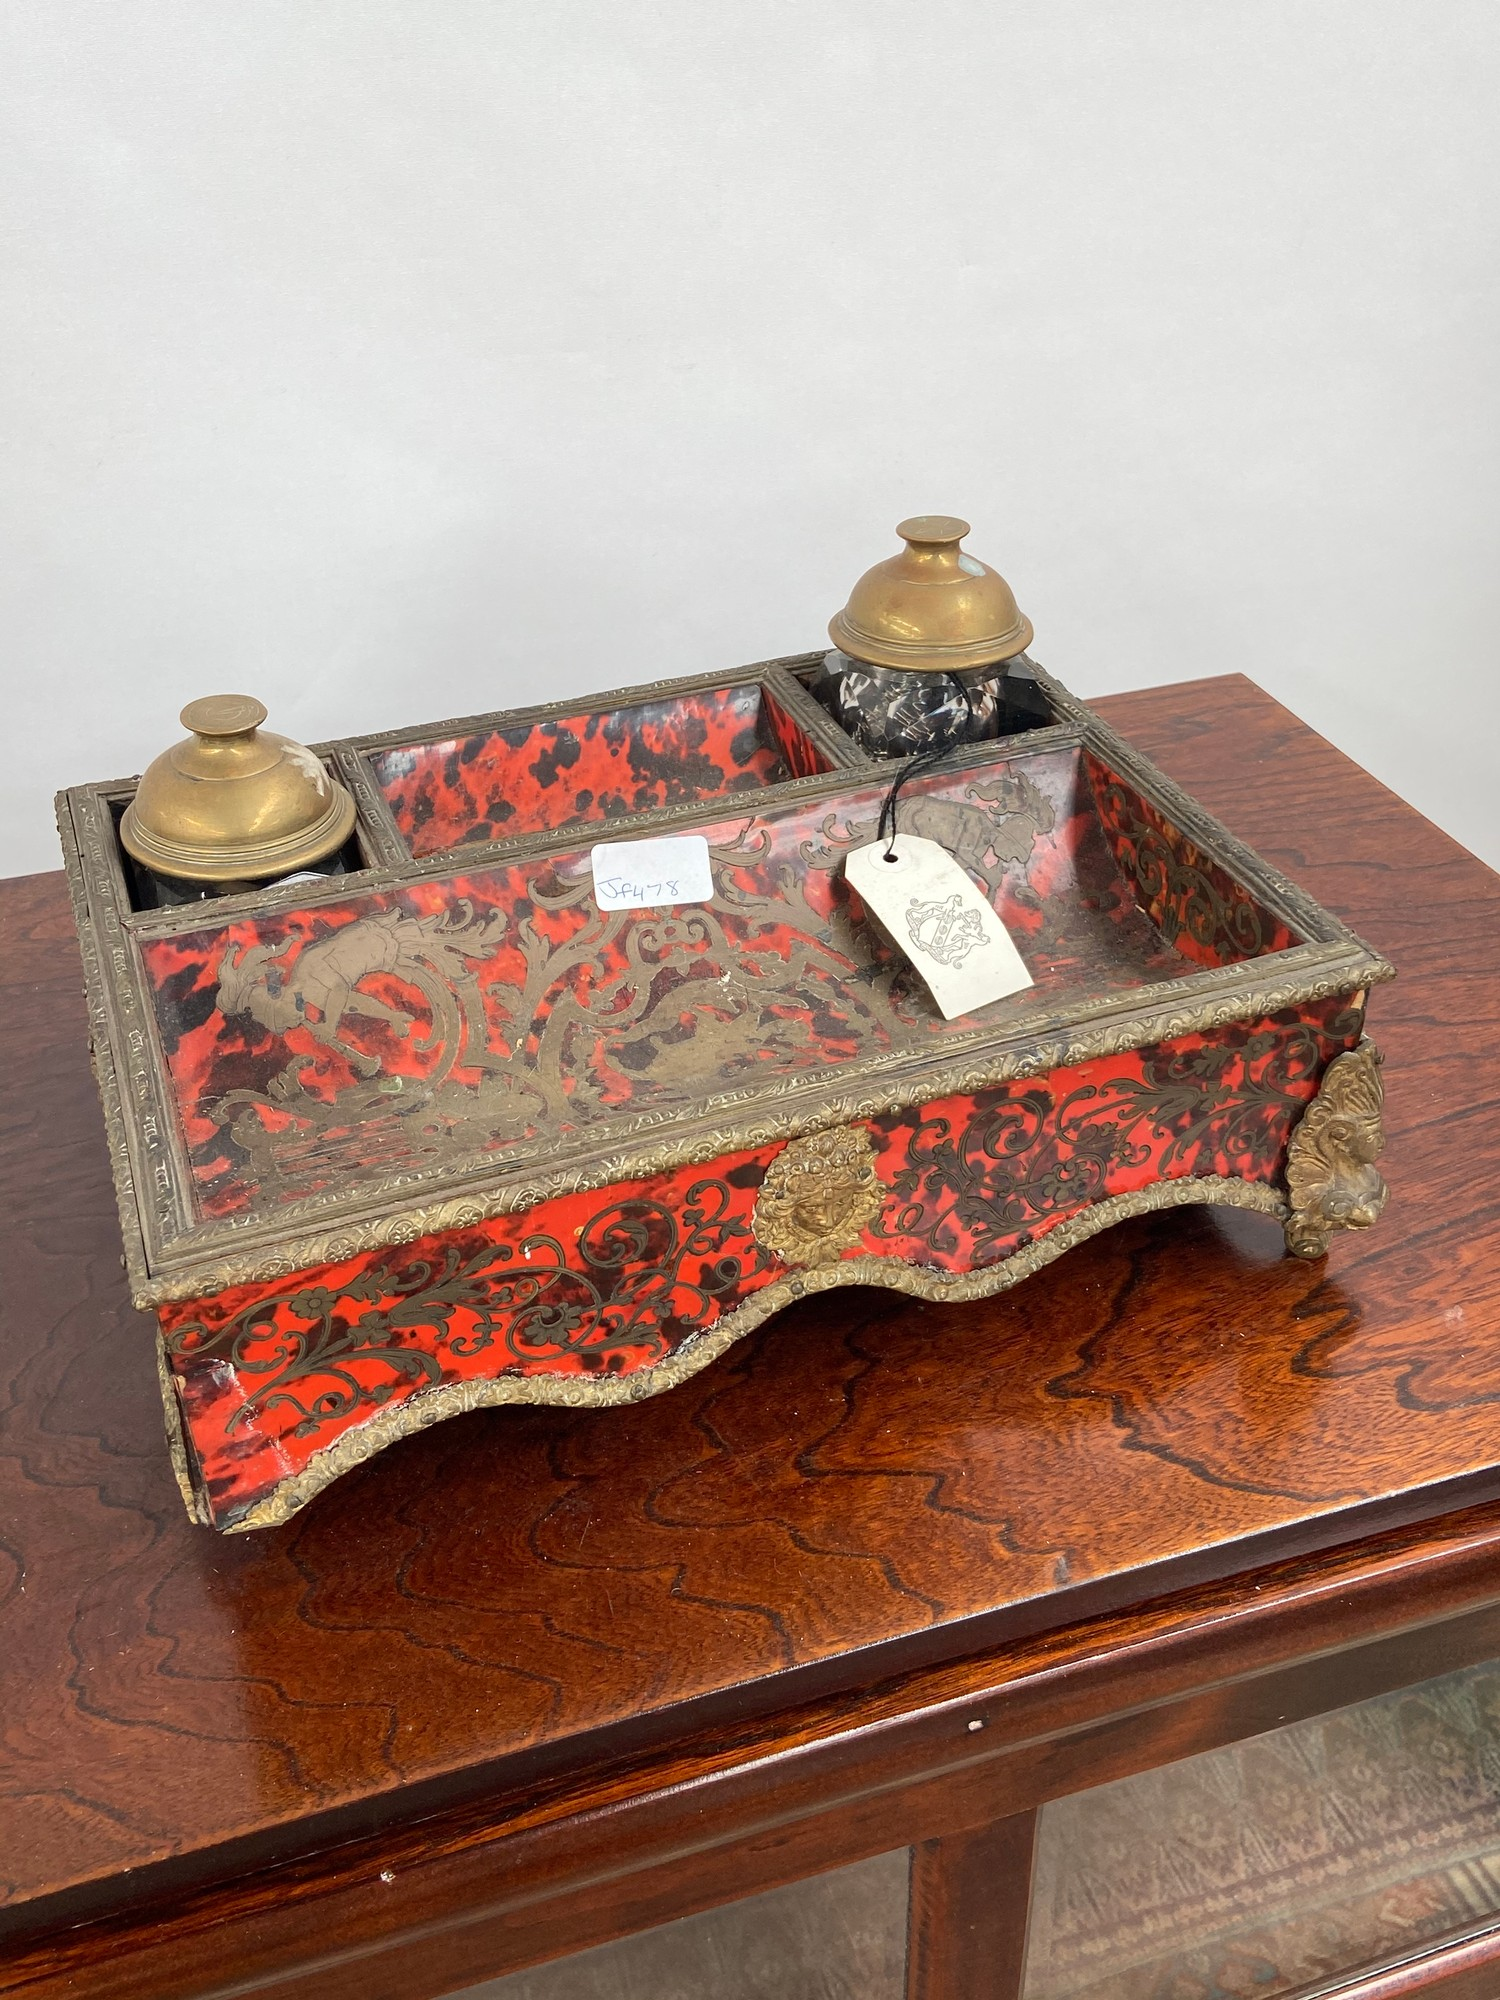 A 19th century French Boulle desk double inkwell stand. [missing a foot] [11x35x26cm]